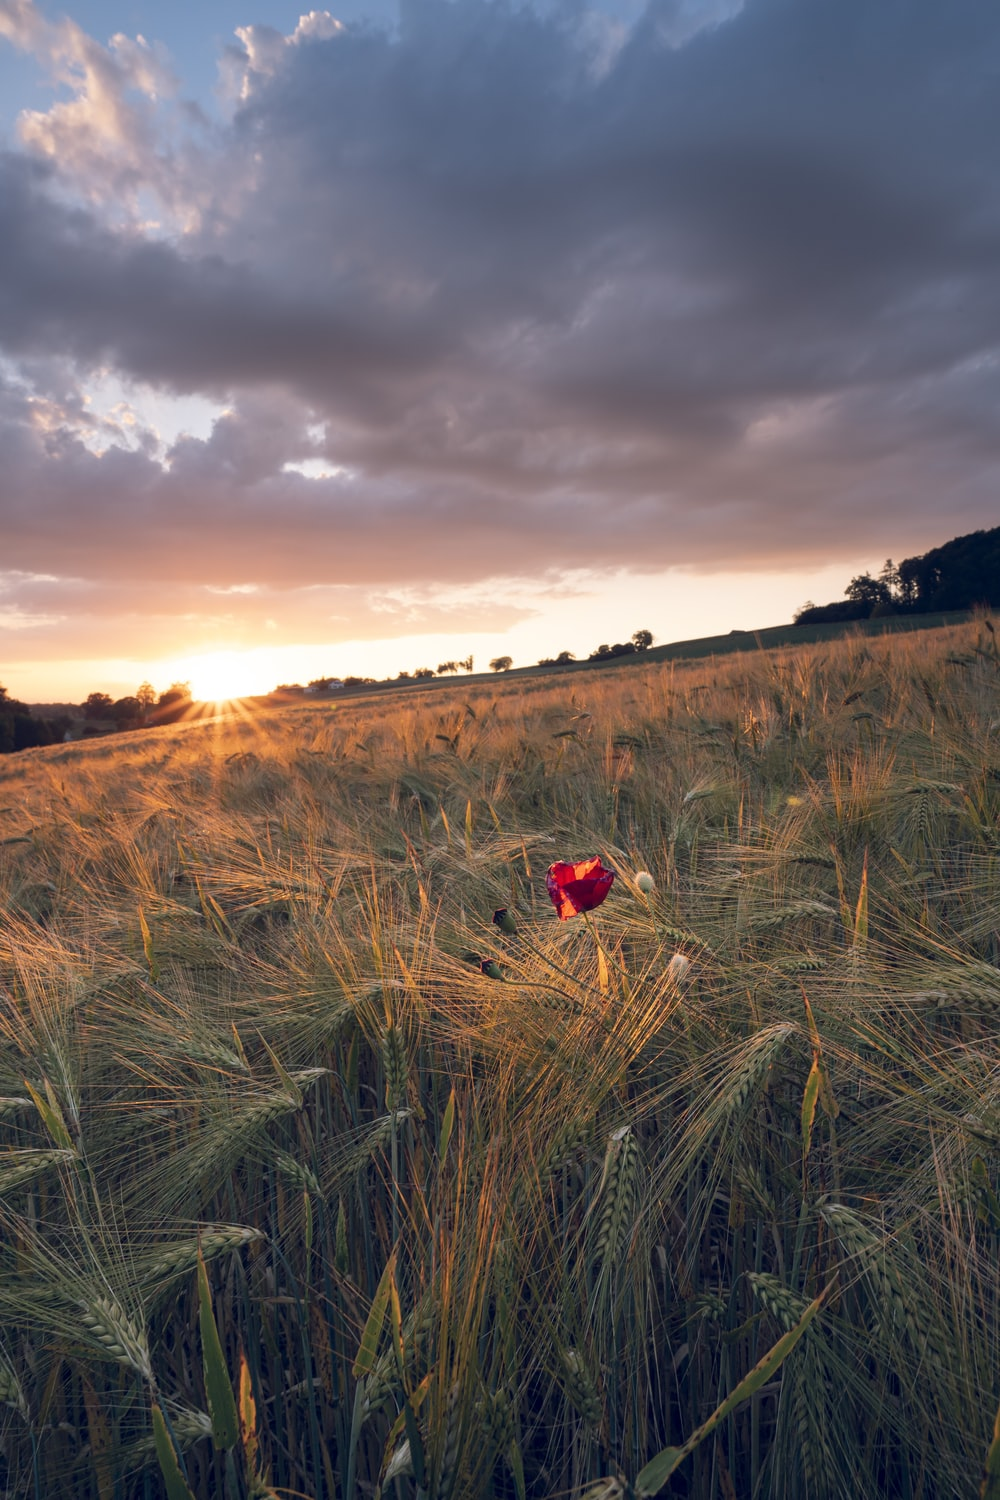 red and black bird on green grass field during sunset